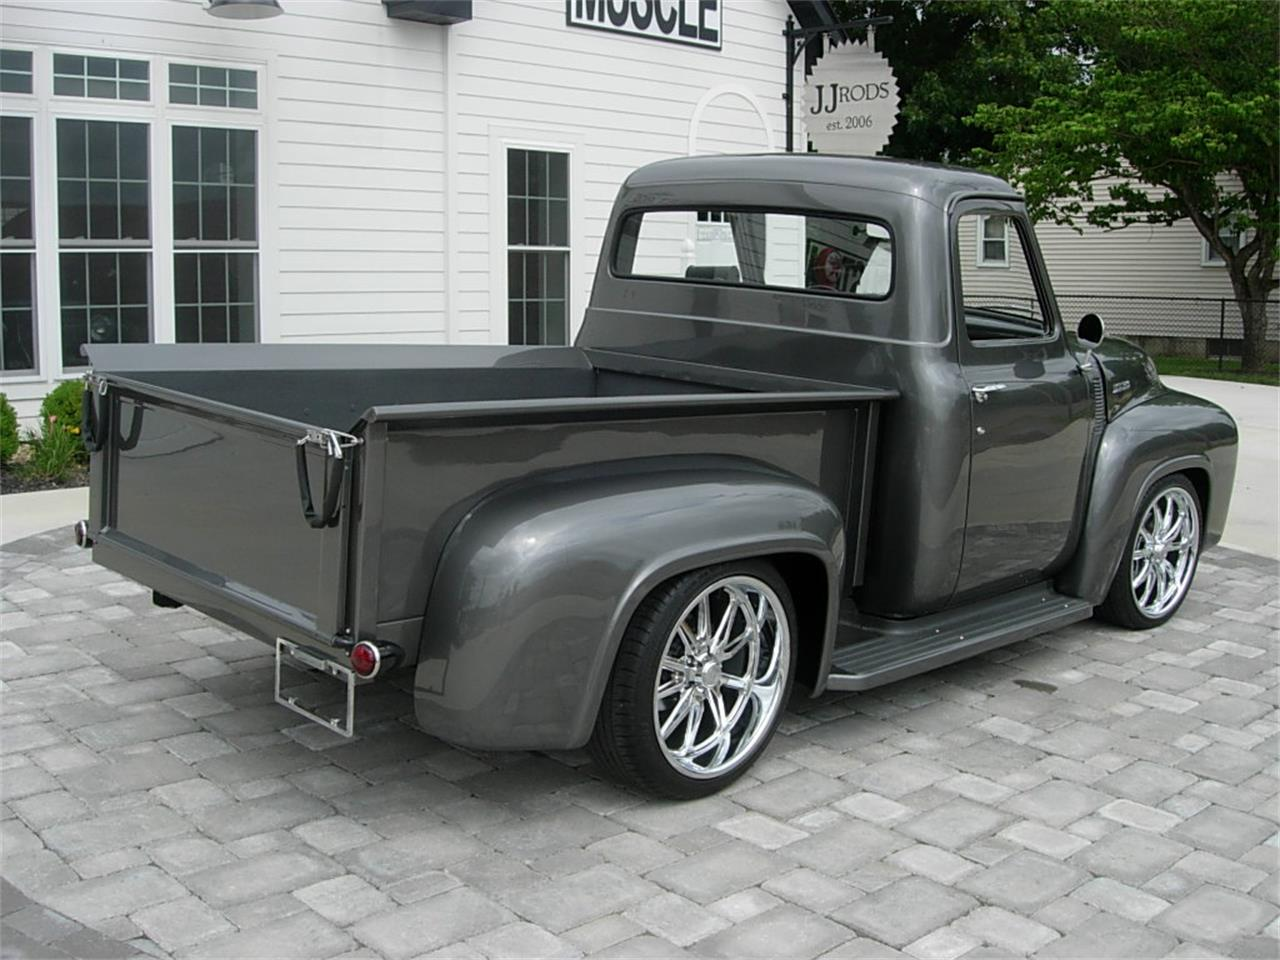 Large Picture of Classic 1953 F100 Auction Vehicle Offered by JJ Rods, LLC - LE5X